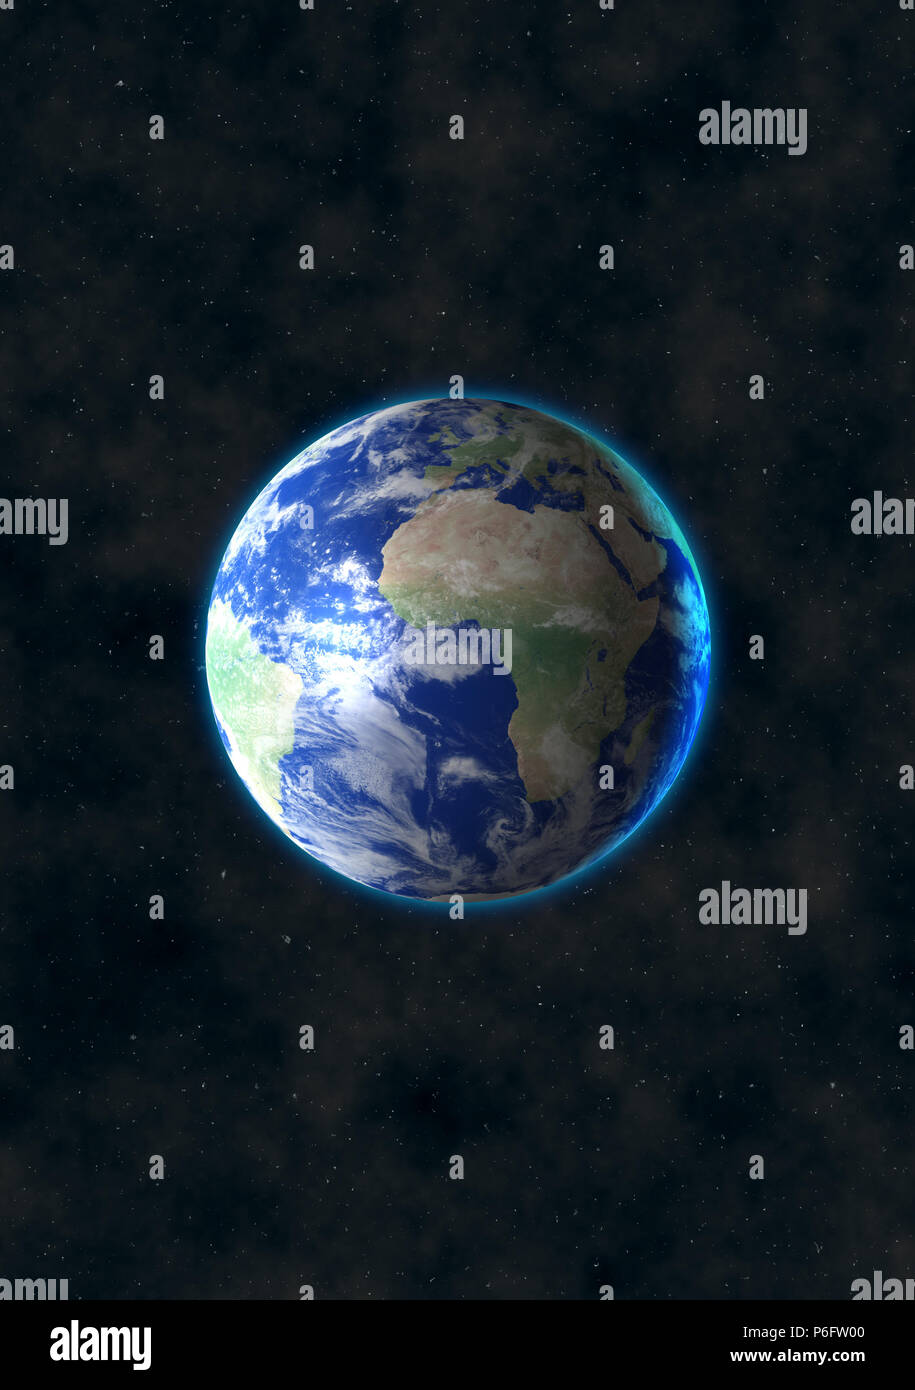 Beautiful View Of Earth Digital Art Wallpaper Blue Planet In Space